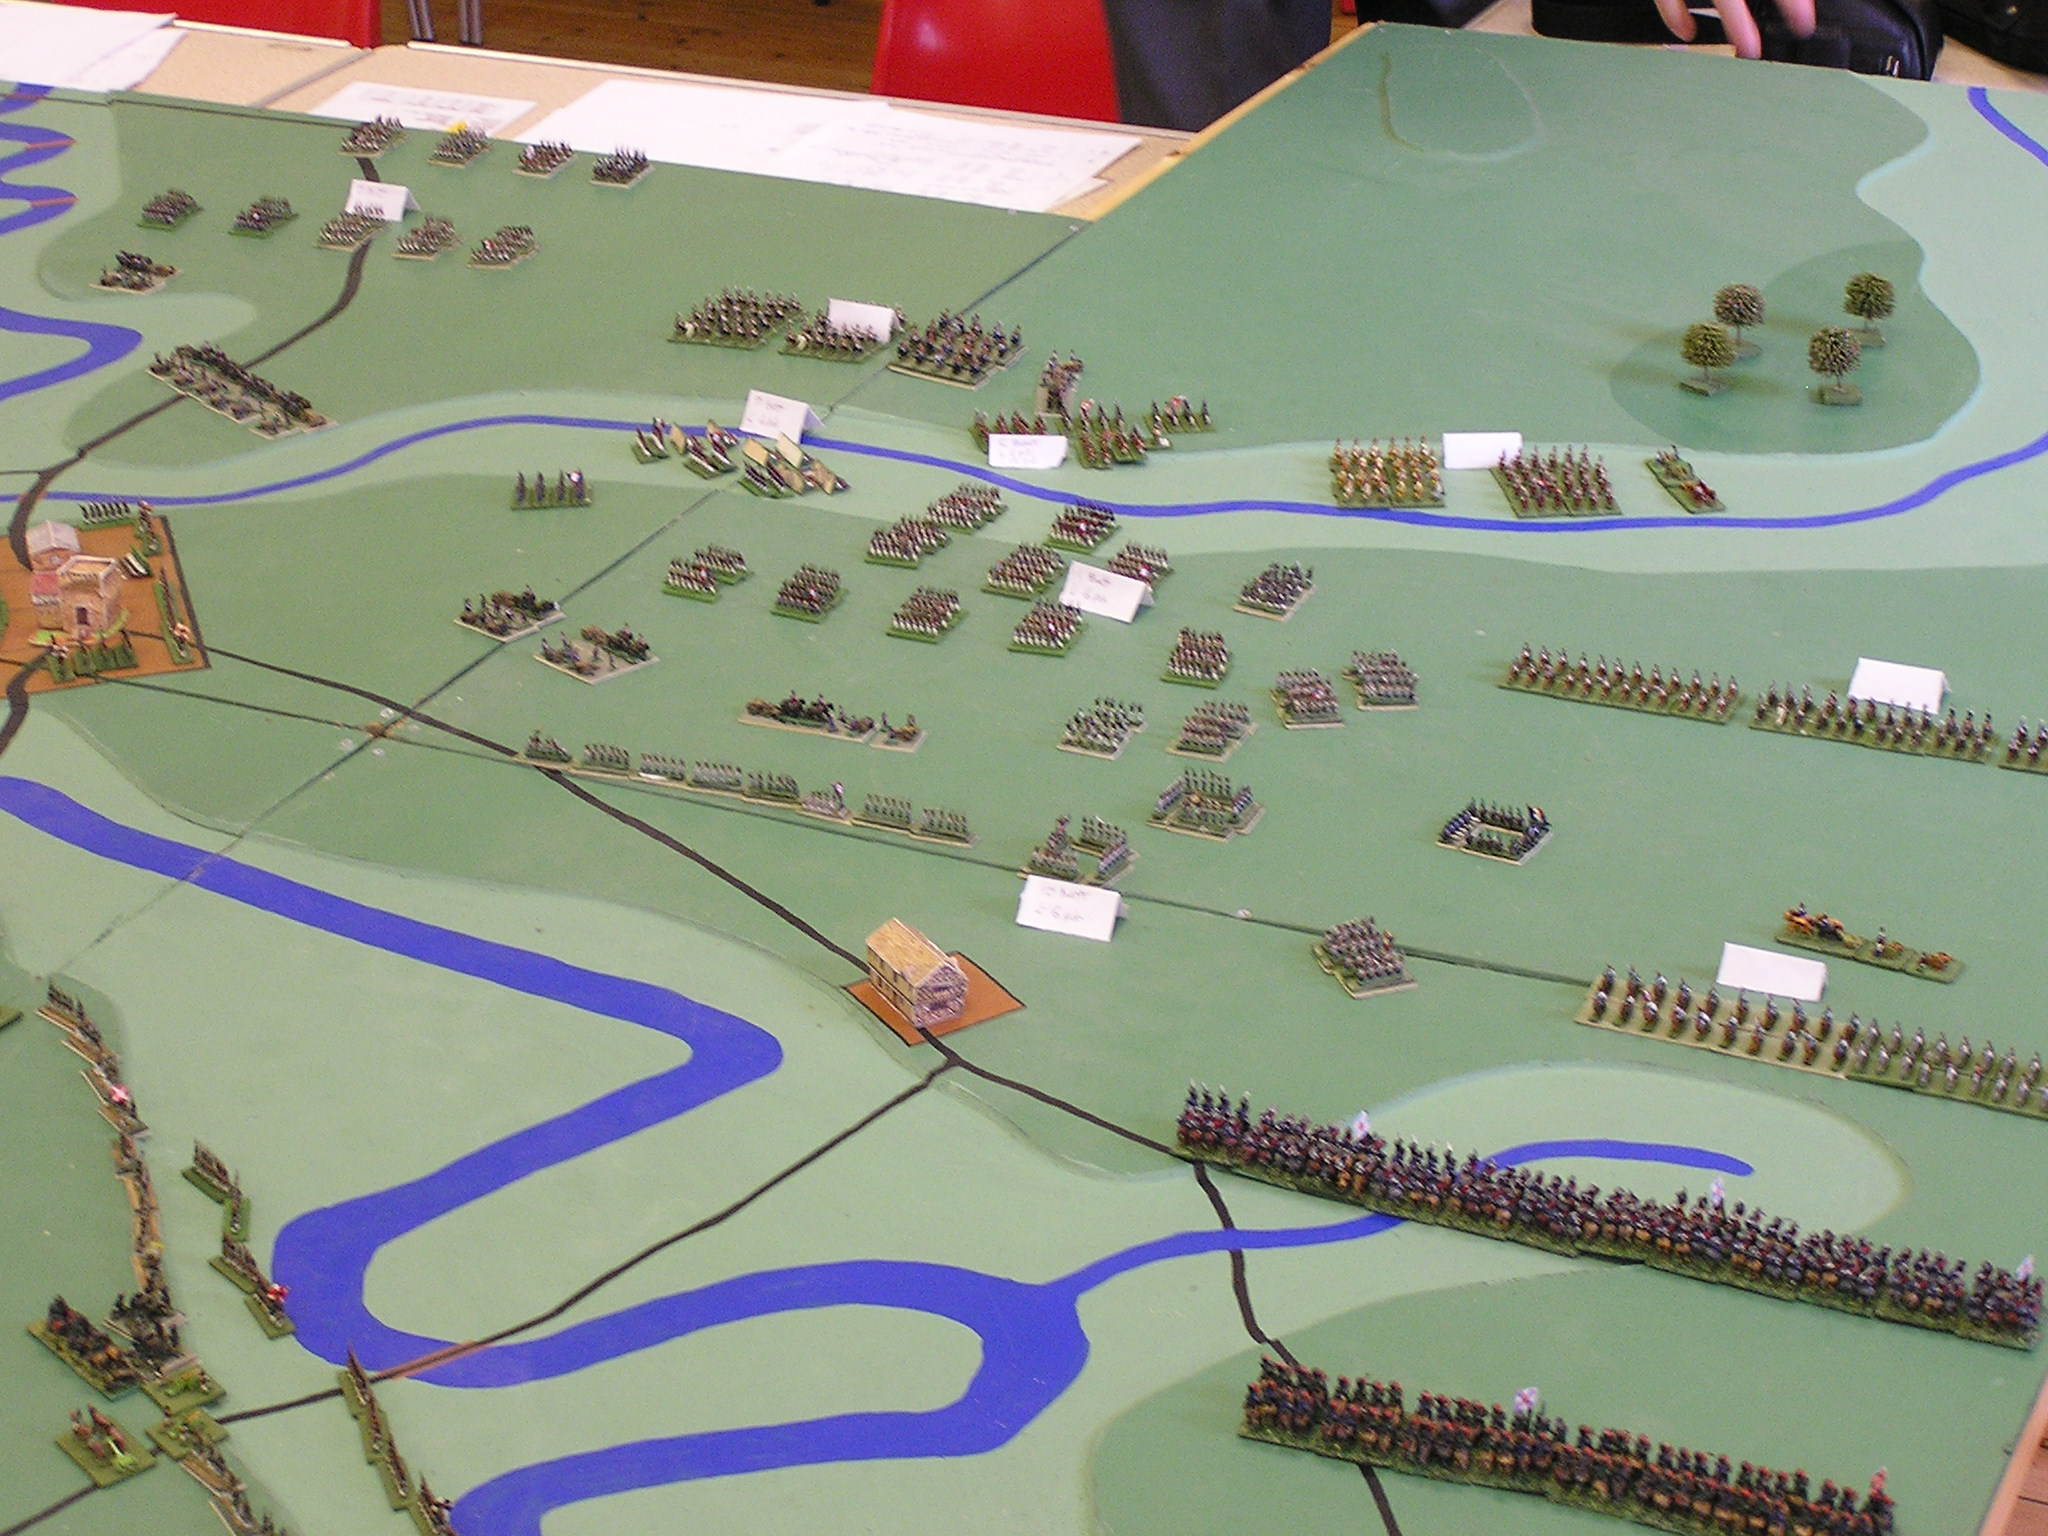 French cavalry advance in North